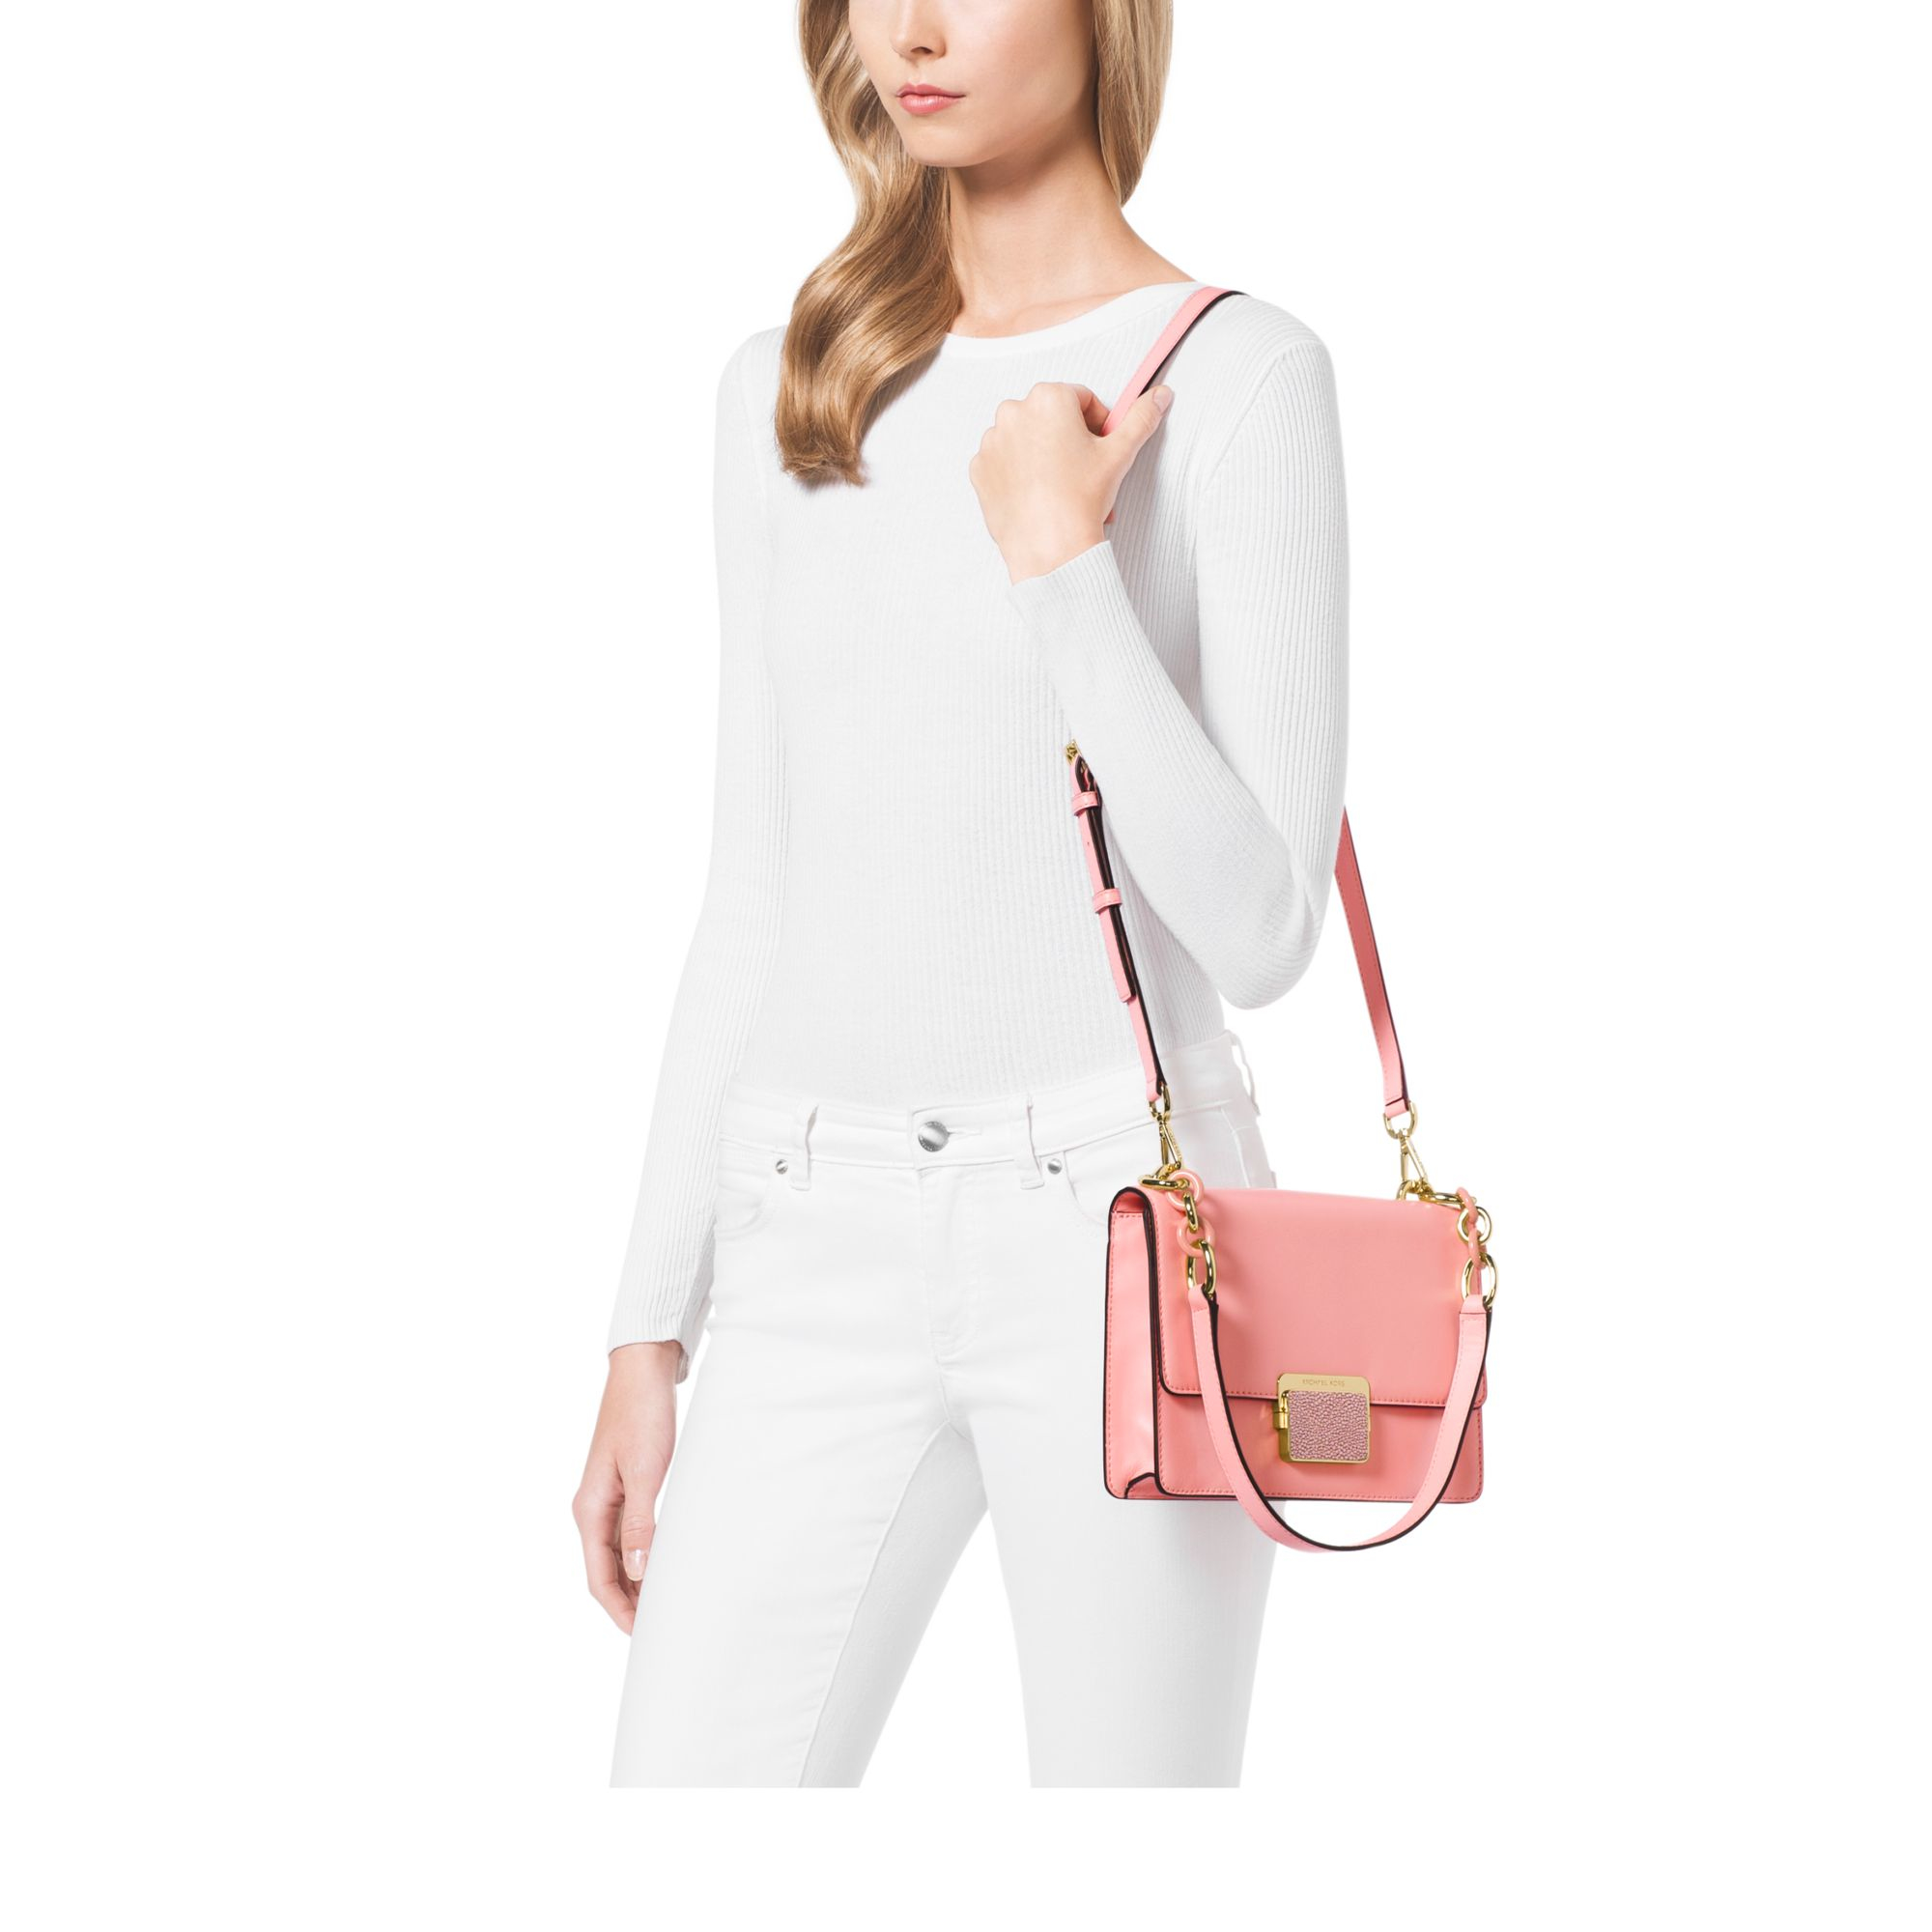 af88084aa6df Michael Kors Cynthia Small Leather Shoulder Bag in Pink - Lyst